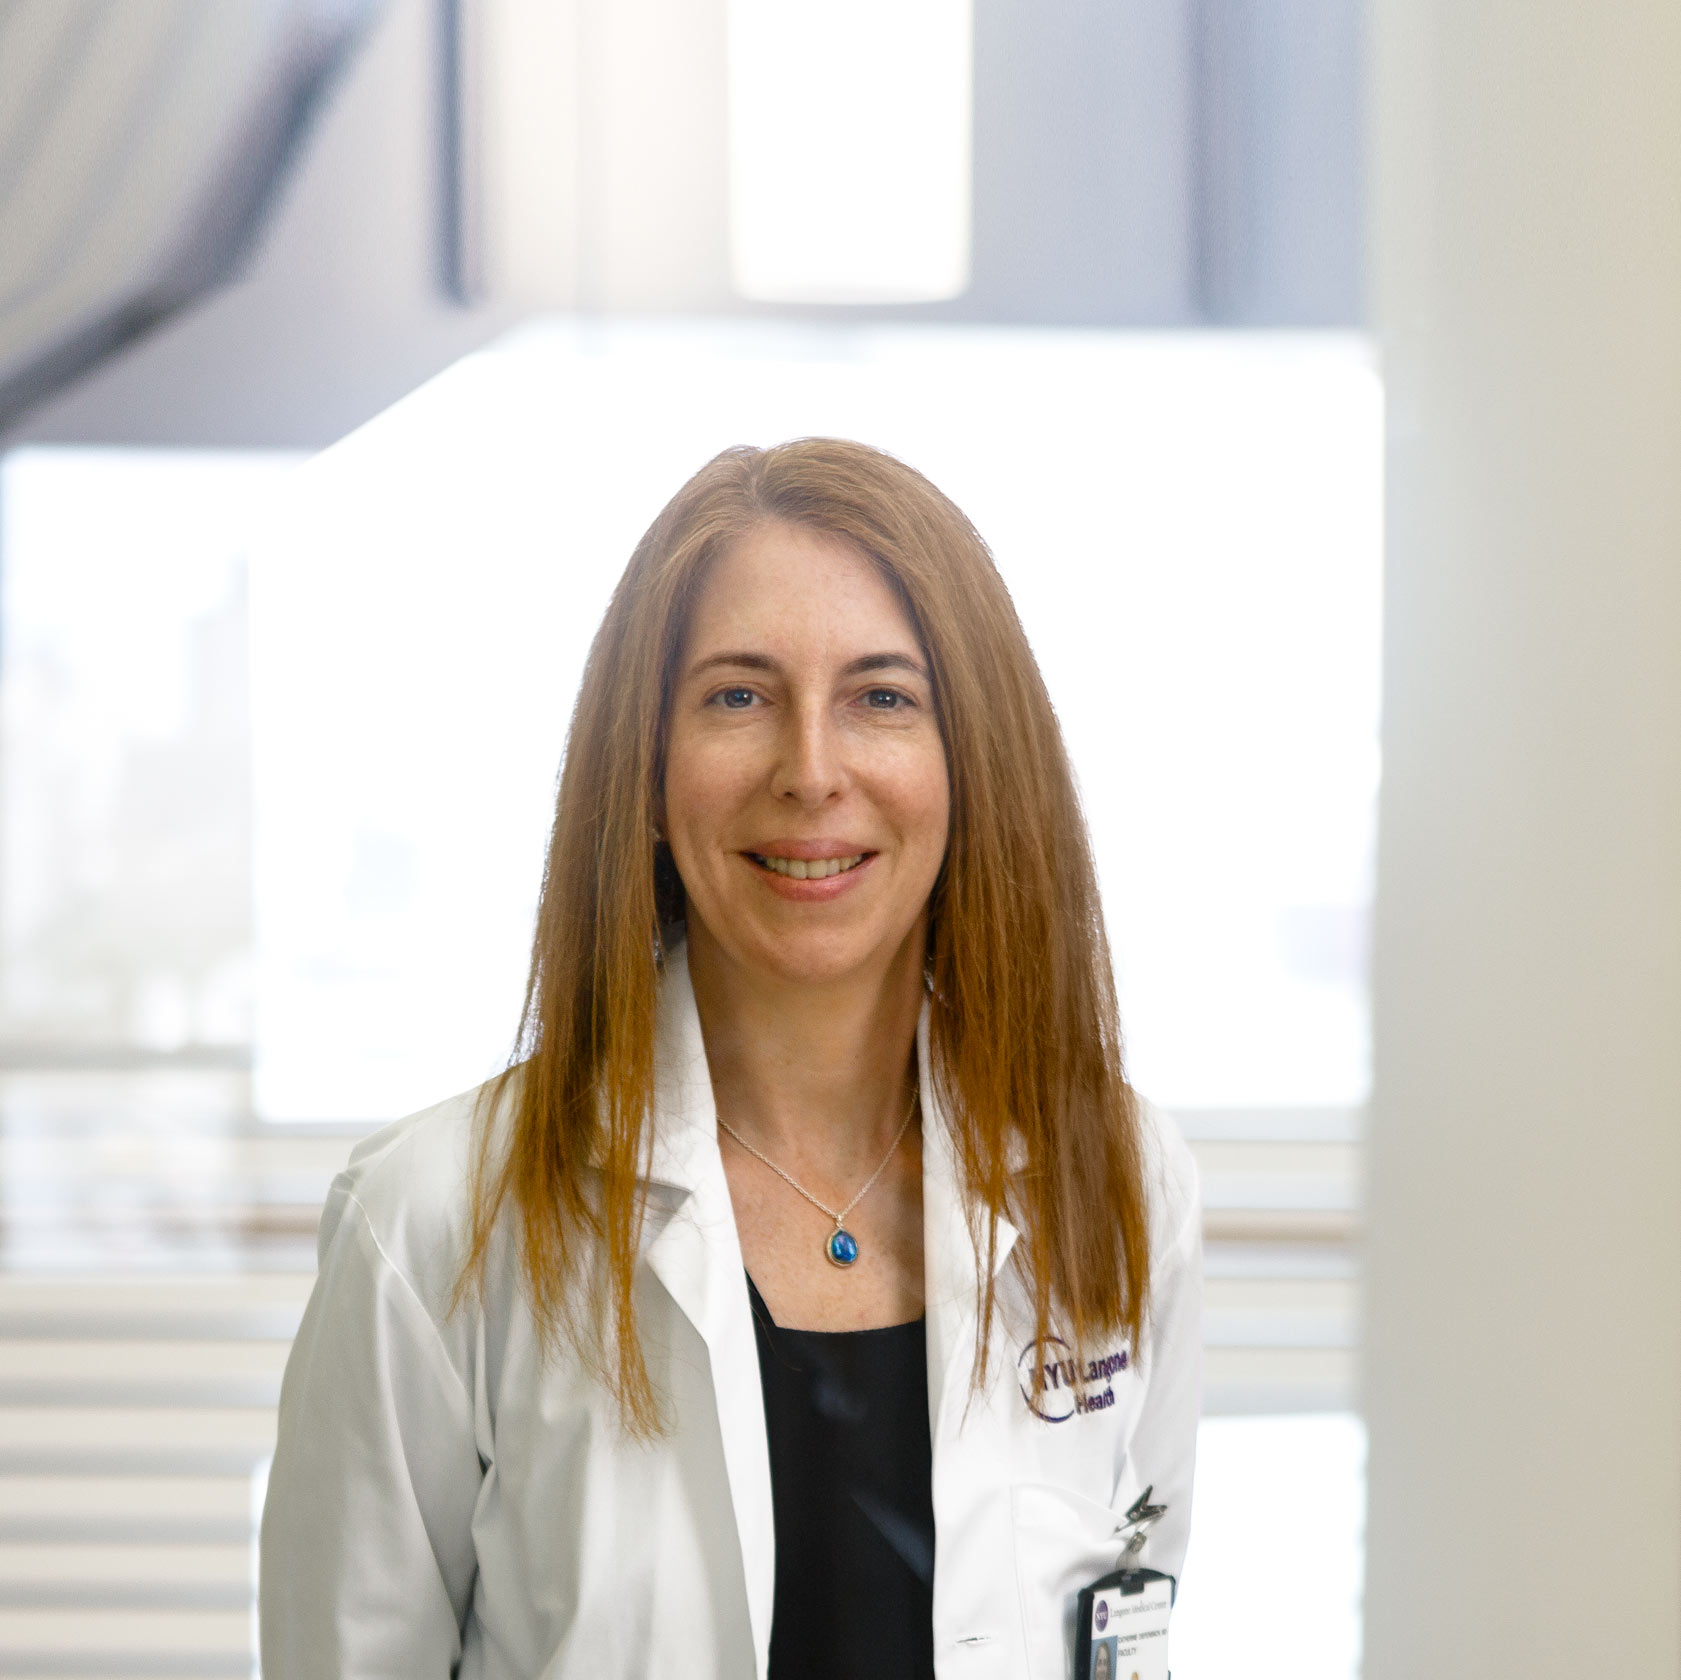 Hematologist Dr. Catherine Diefenbach